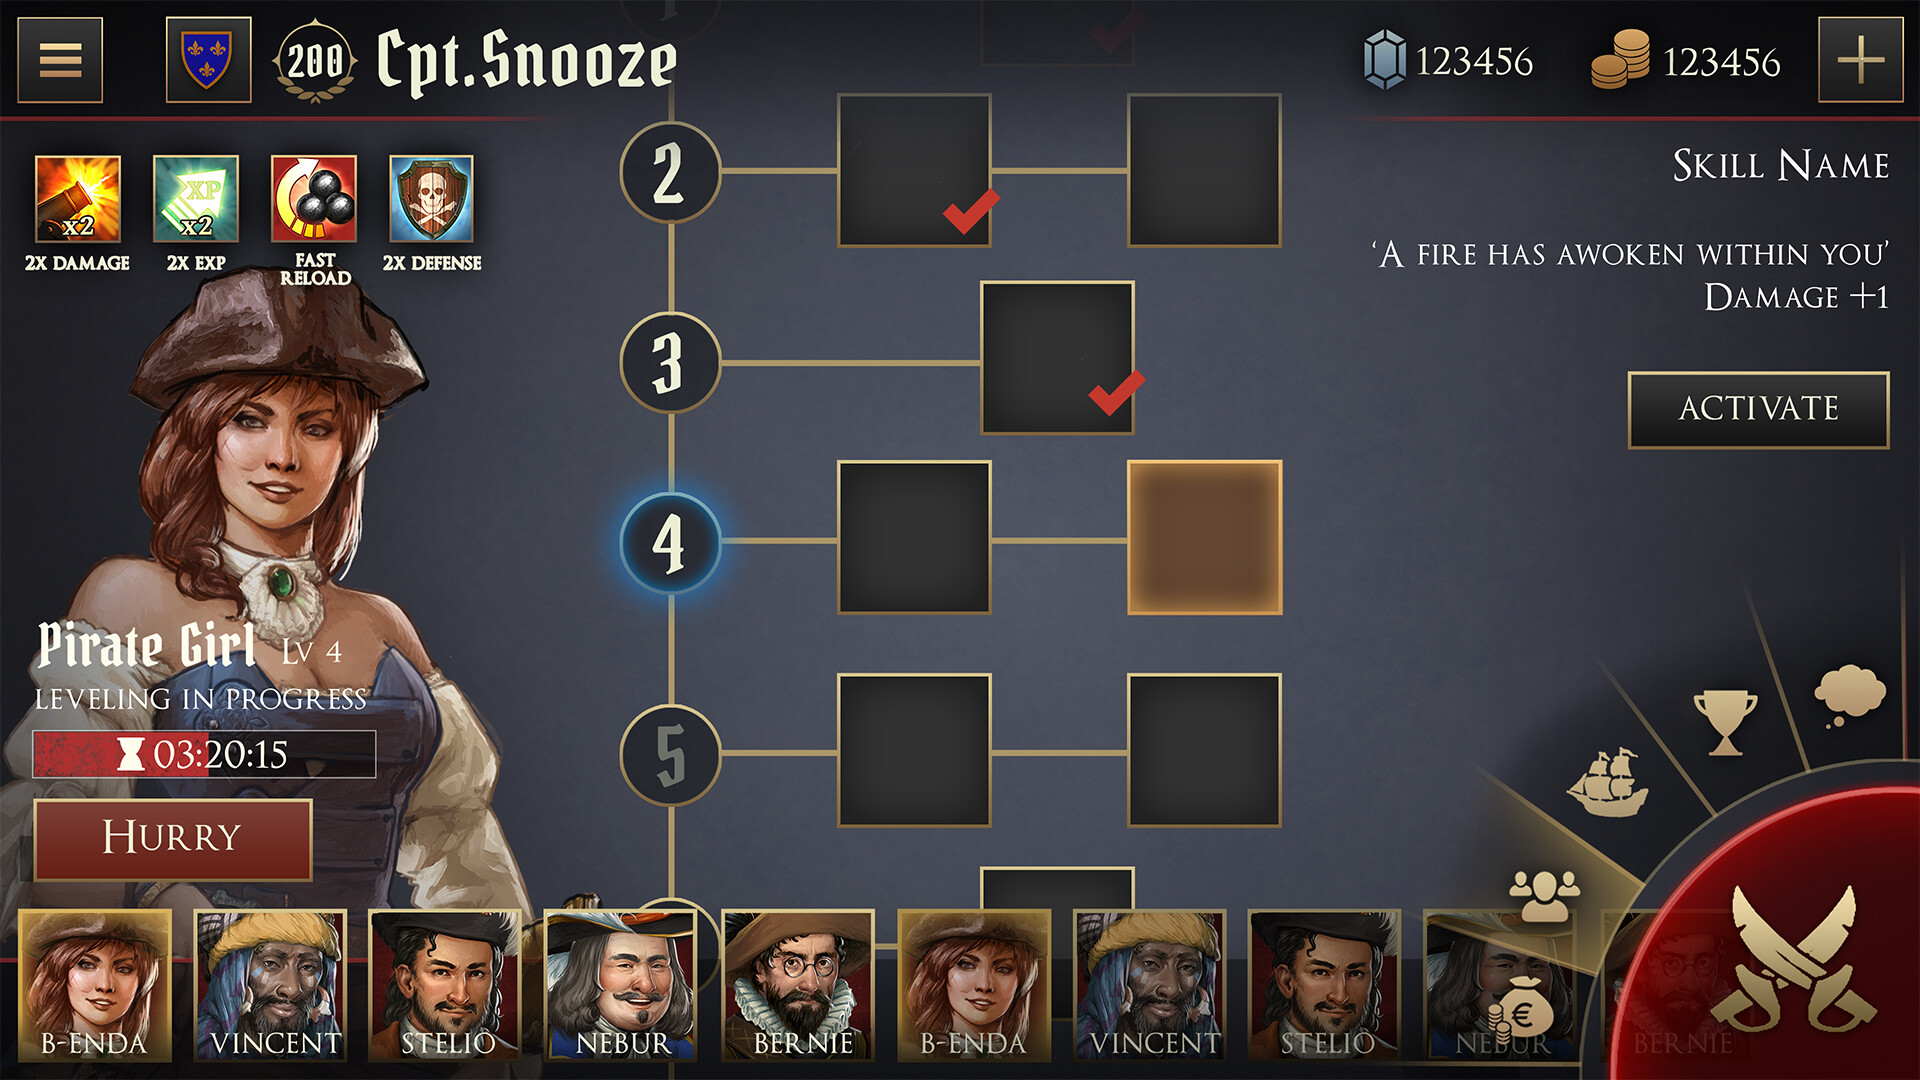 crewmember skilltree UI concept. Here you would unlock new skills by leveling your crew.